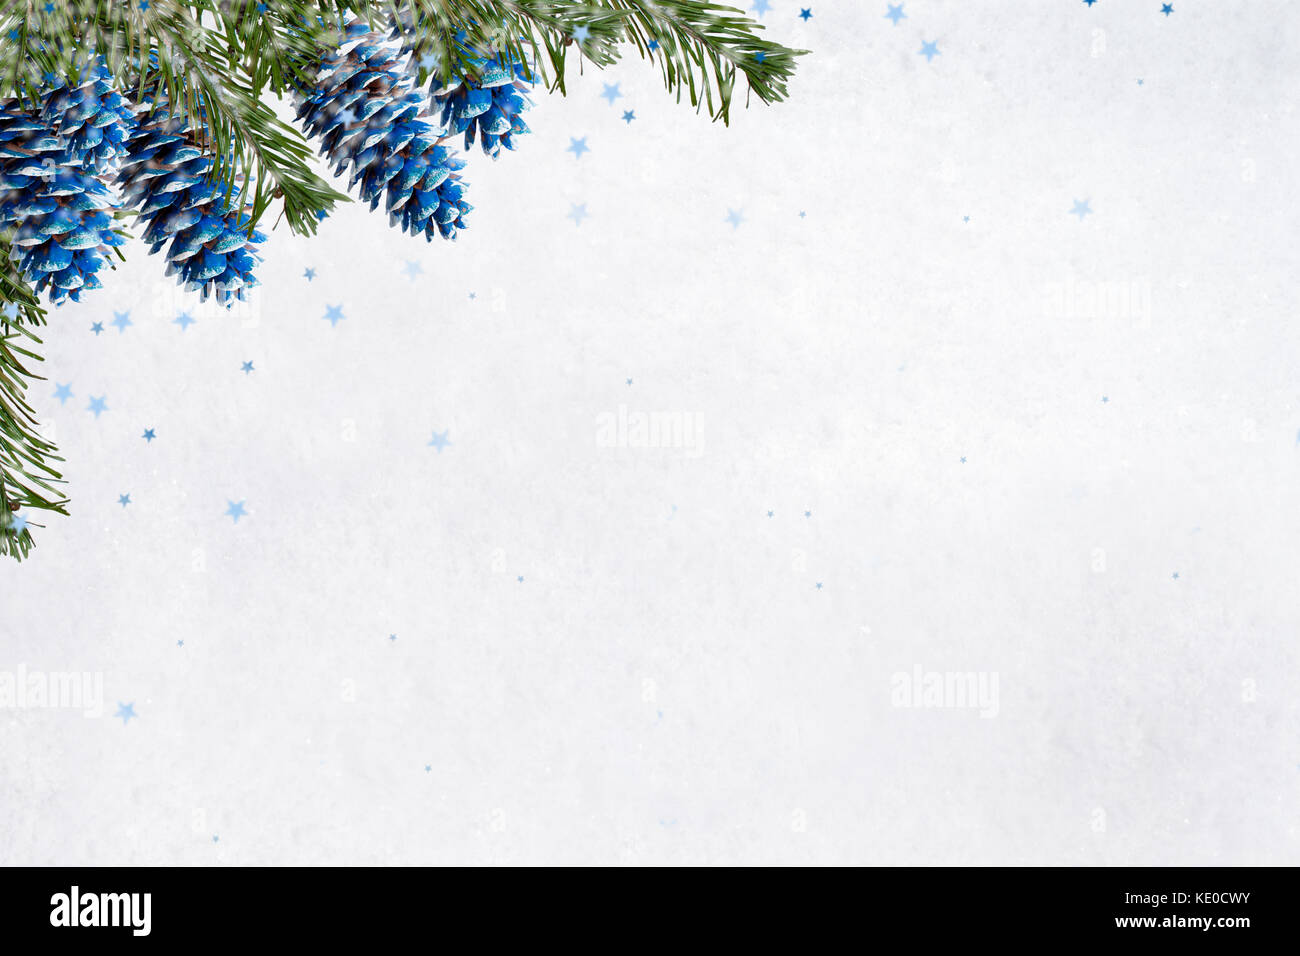 Christmas background. Painted blue fir cones and green branches are hanging from the top left on background of white - Stock Image